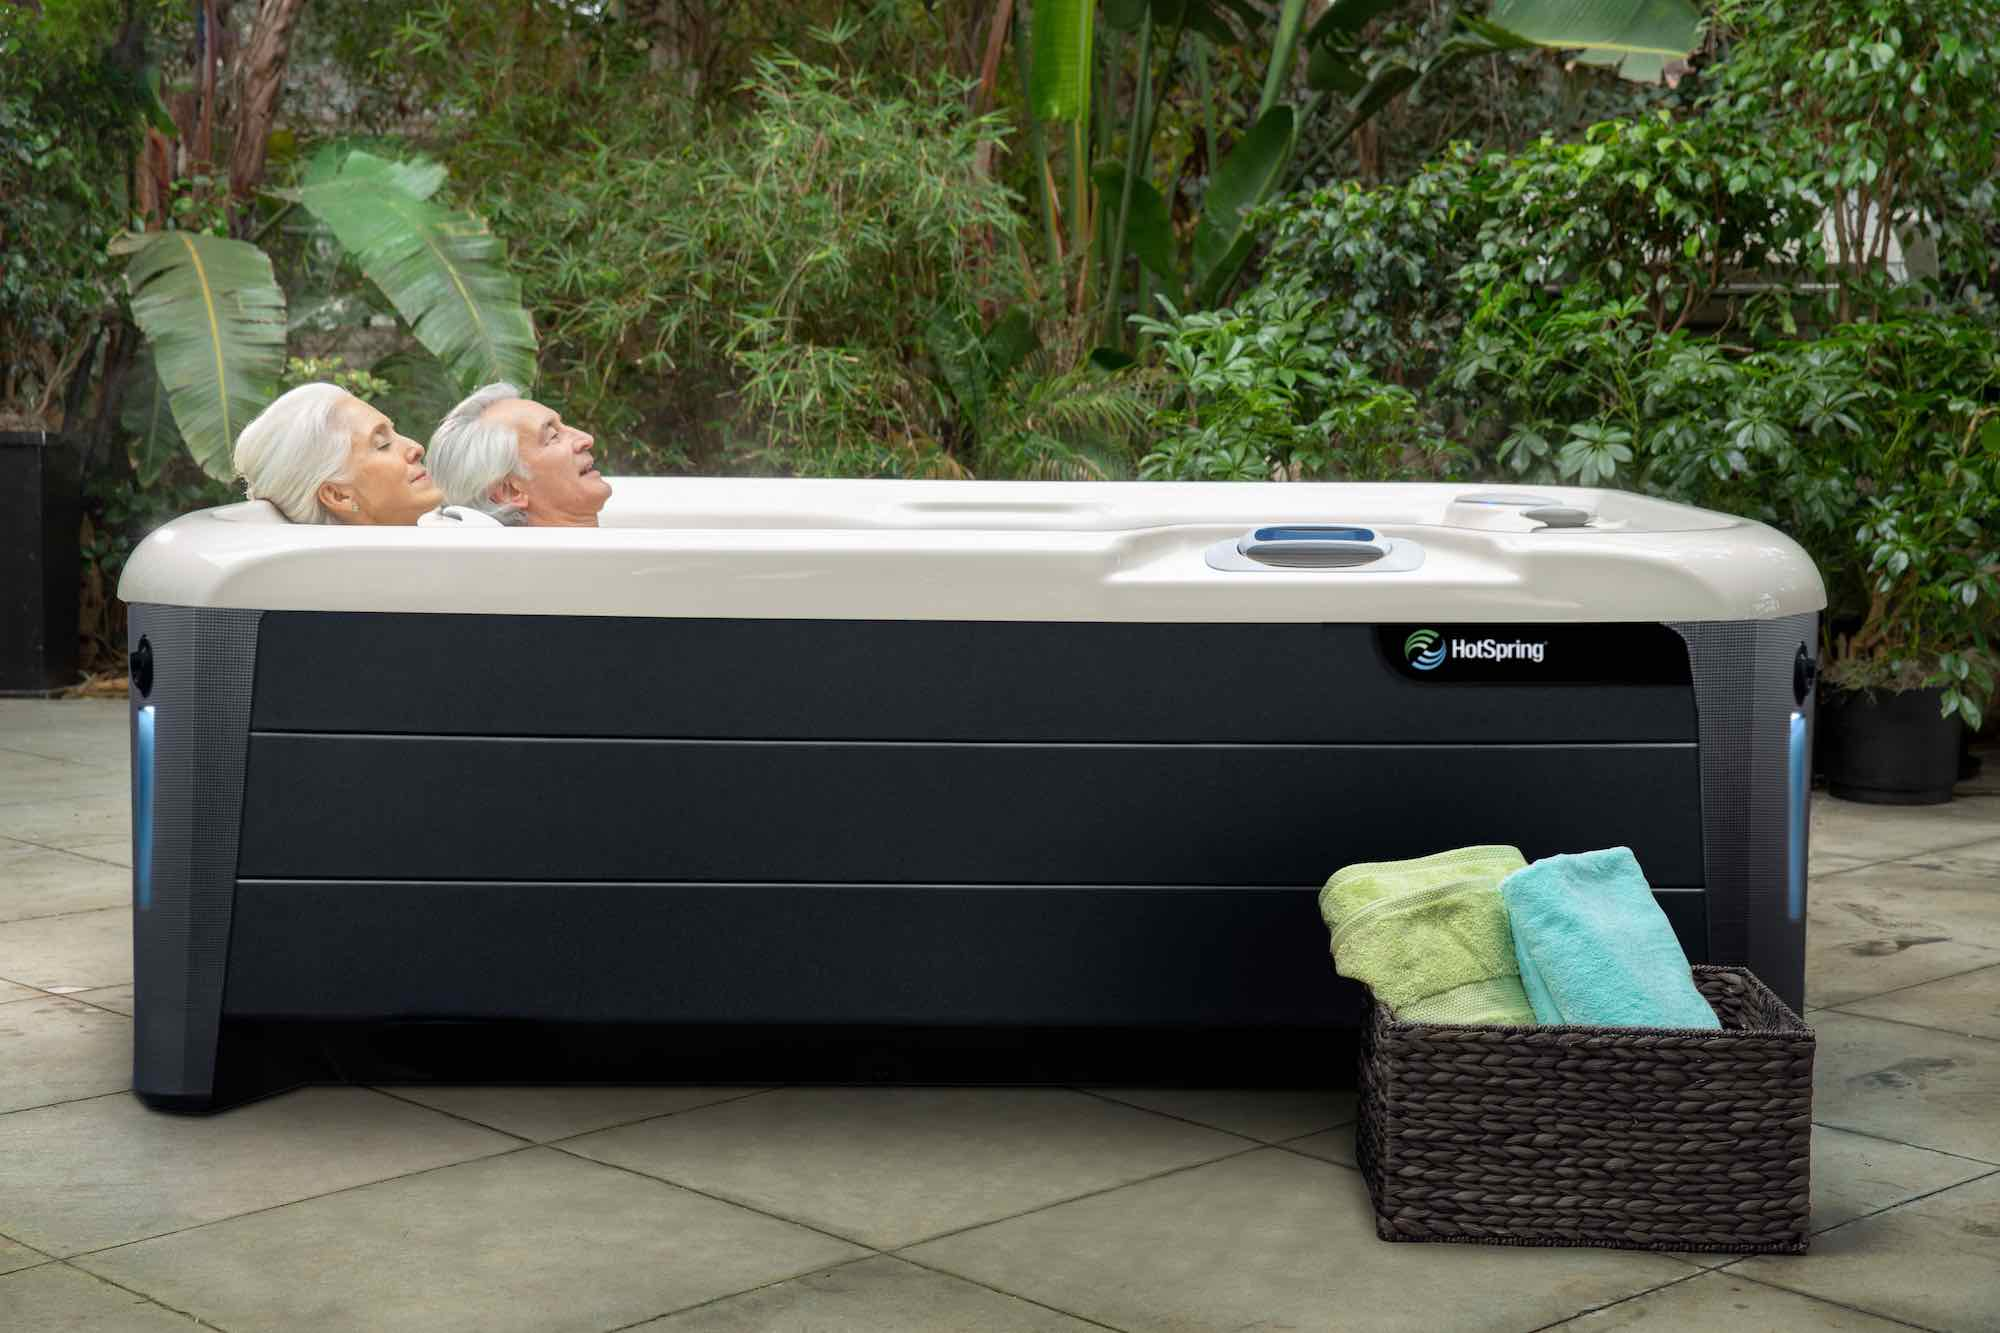 Hot Spring Spas Jetsetter XL Hot Tub at Lifestyle Outdoor in Los Angeles, California